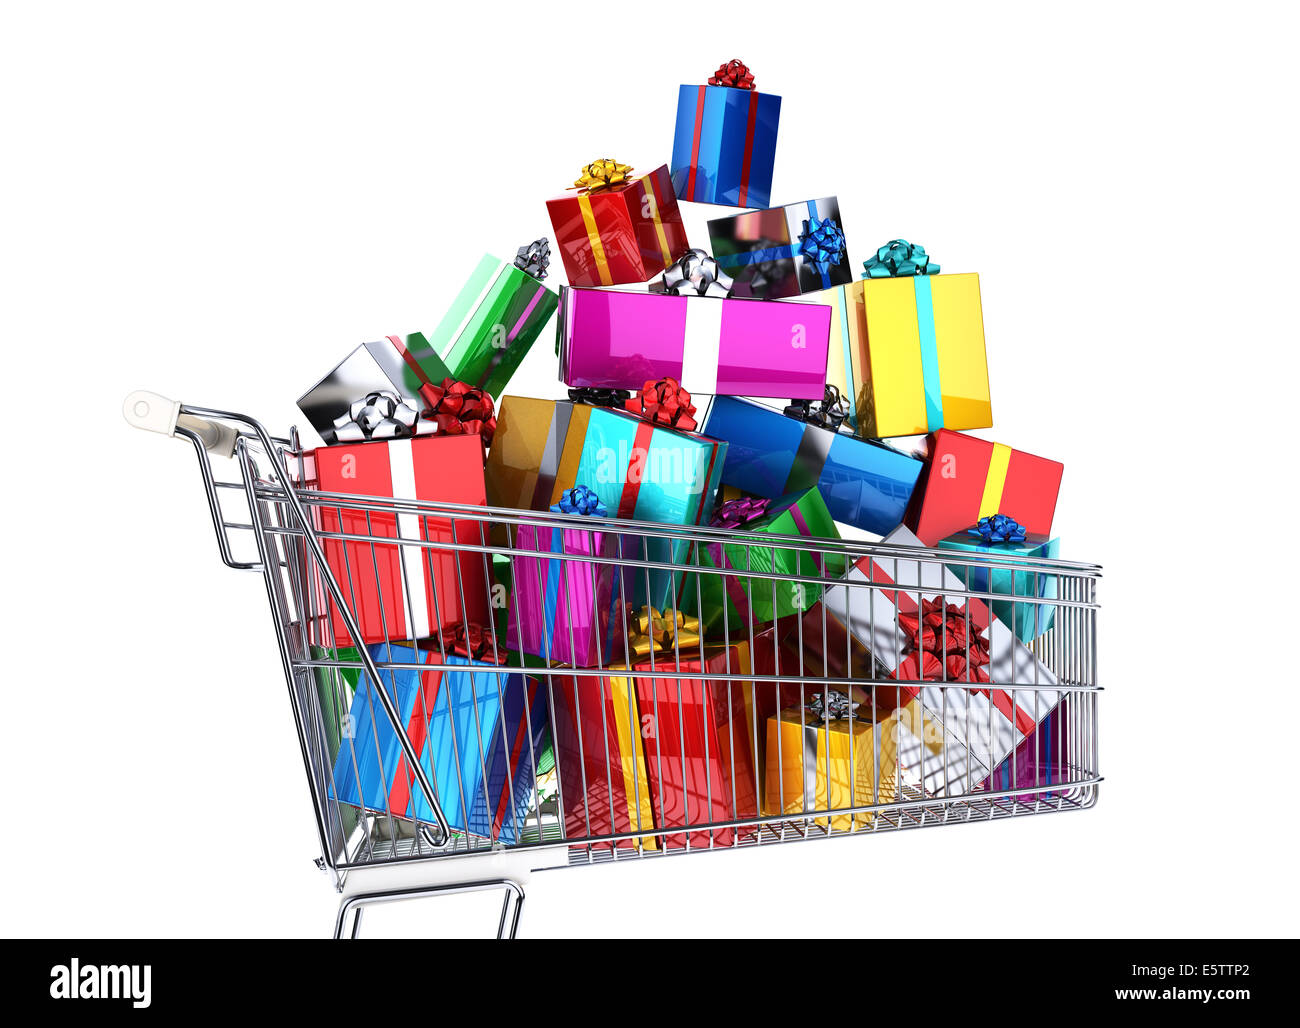 Supermarket trolley full of many multicolored gifts. Side view, on white background. Clipping path included. - Stock Image